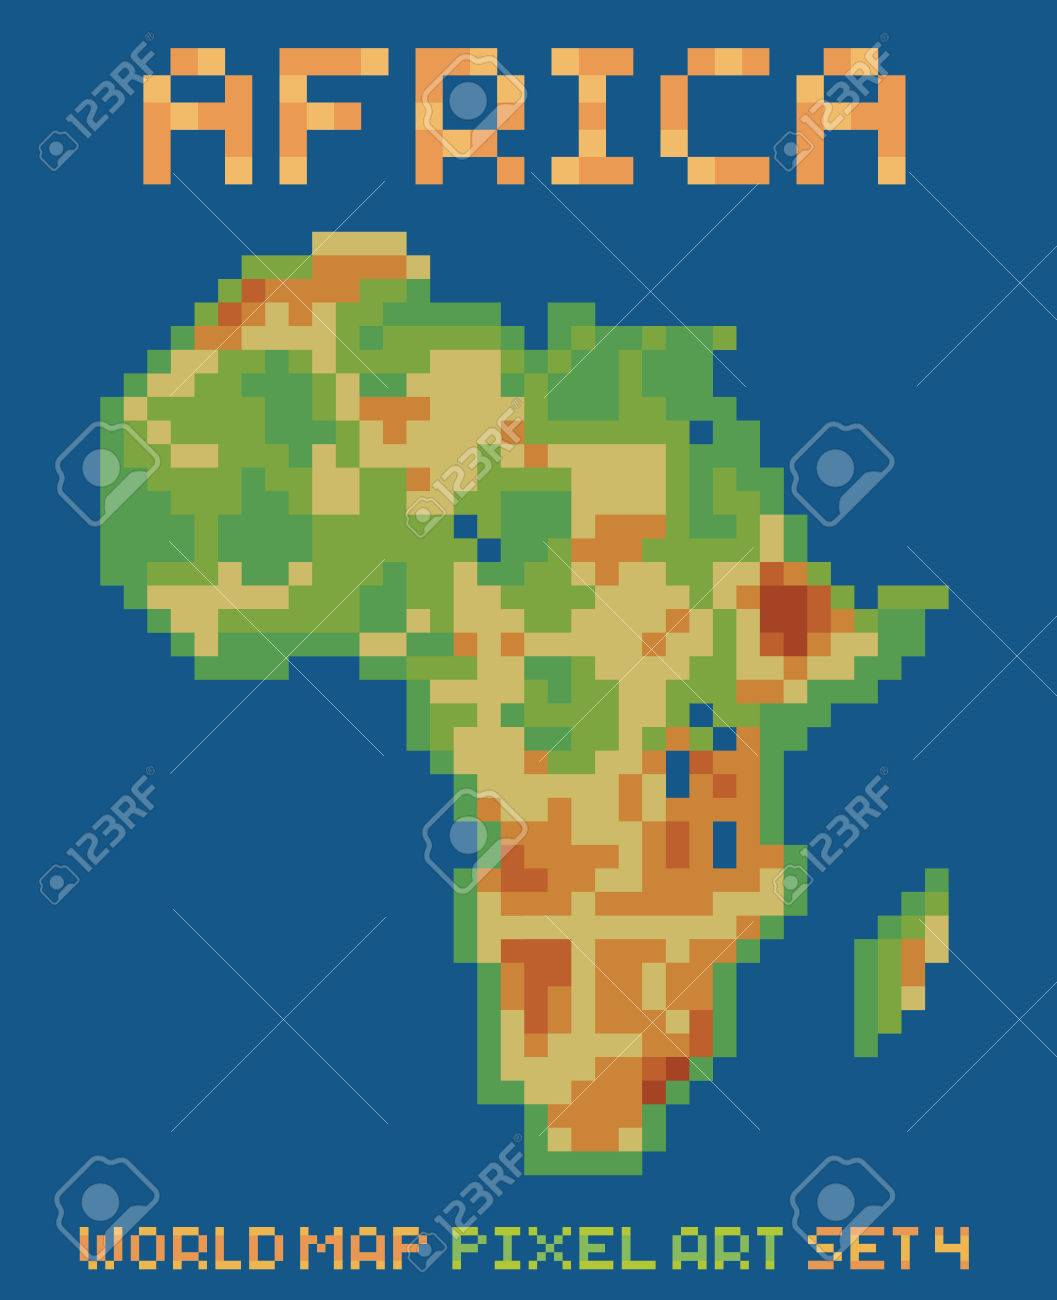 Pixel art style illustration of africa physical world map isolated pixel art style illustration of africa physical world map isolated on dark blue stock vector gumiabroncs Gallery